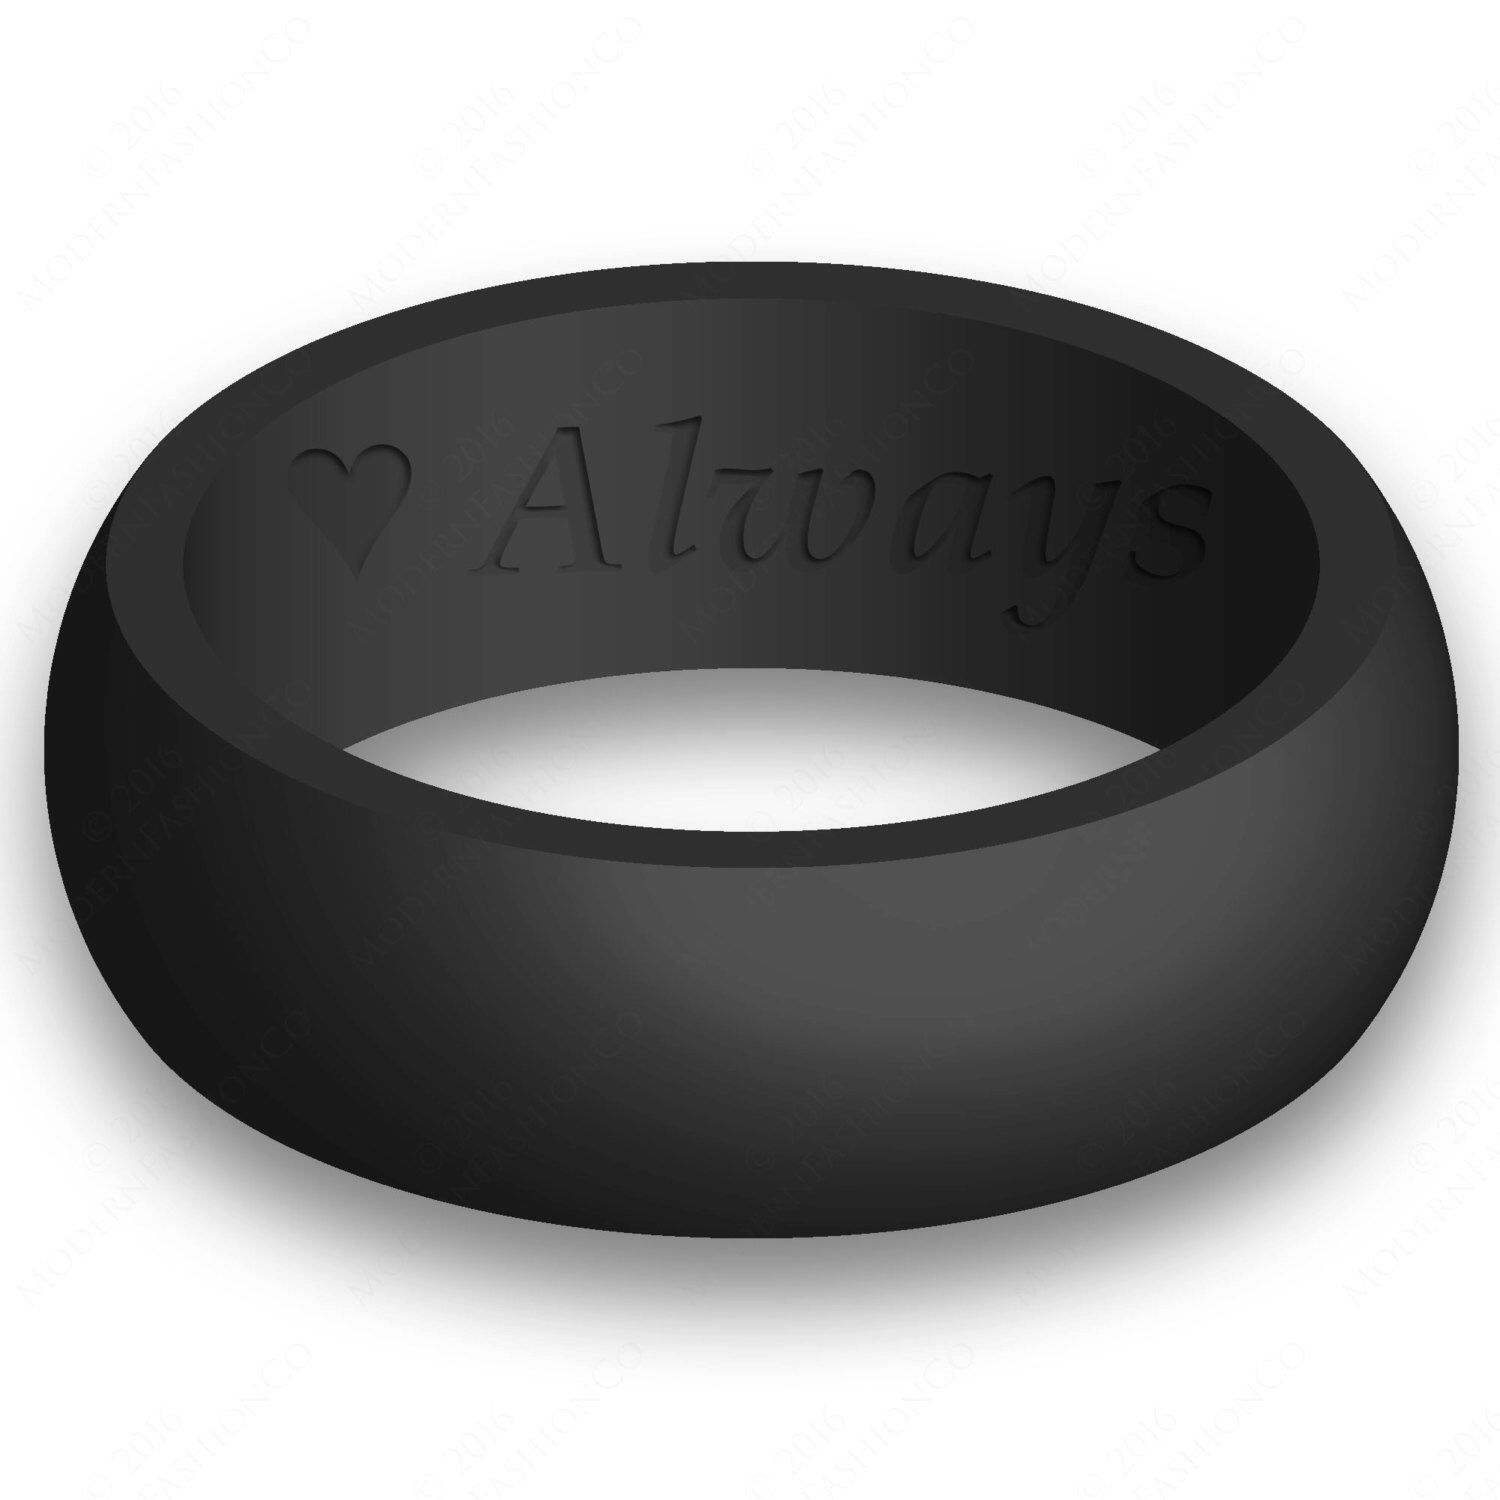 custom engraving mens silicone wedding ring band flexible hypoallergenic safety rubber modern athletic active wear man jewelry - Hypoallergenic Wedding Rings